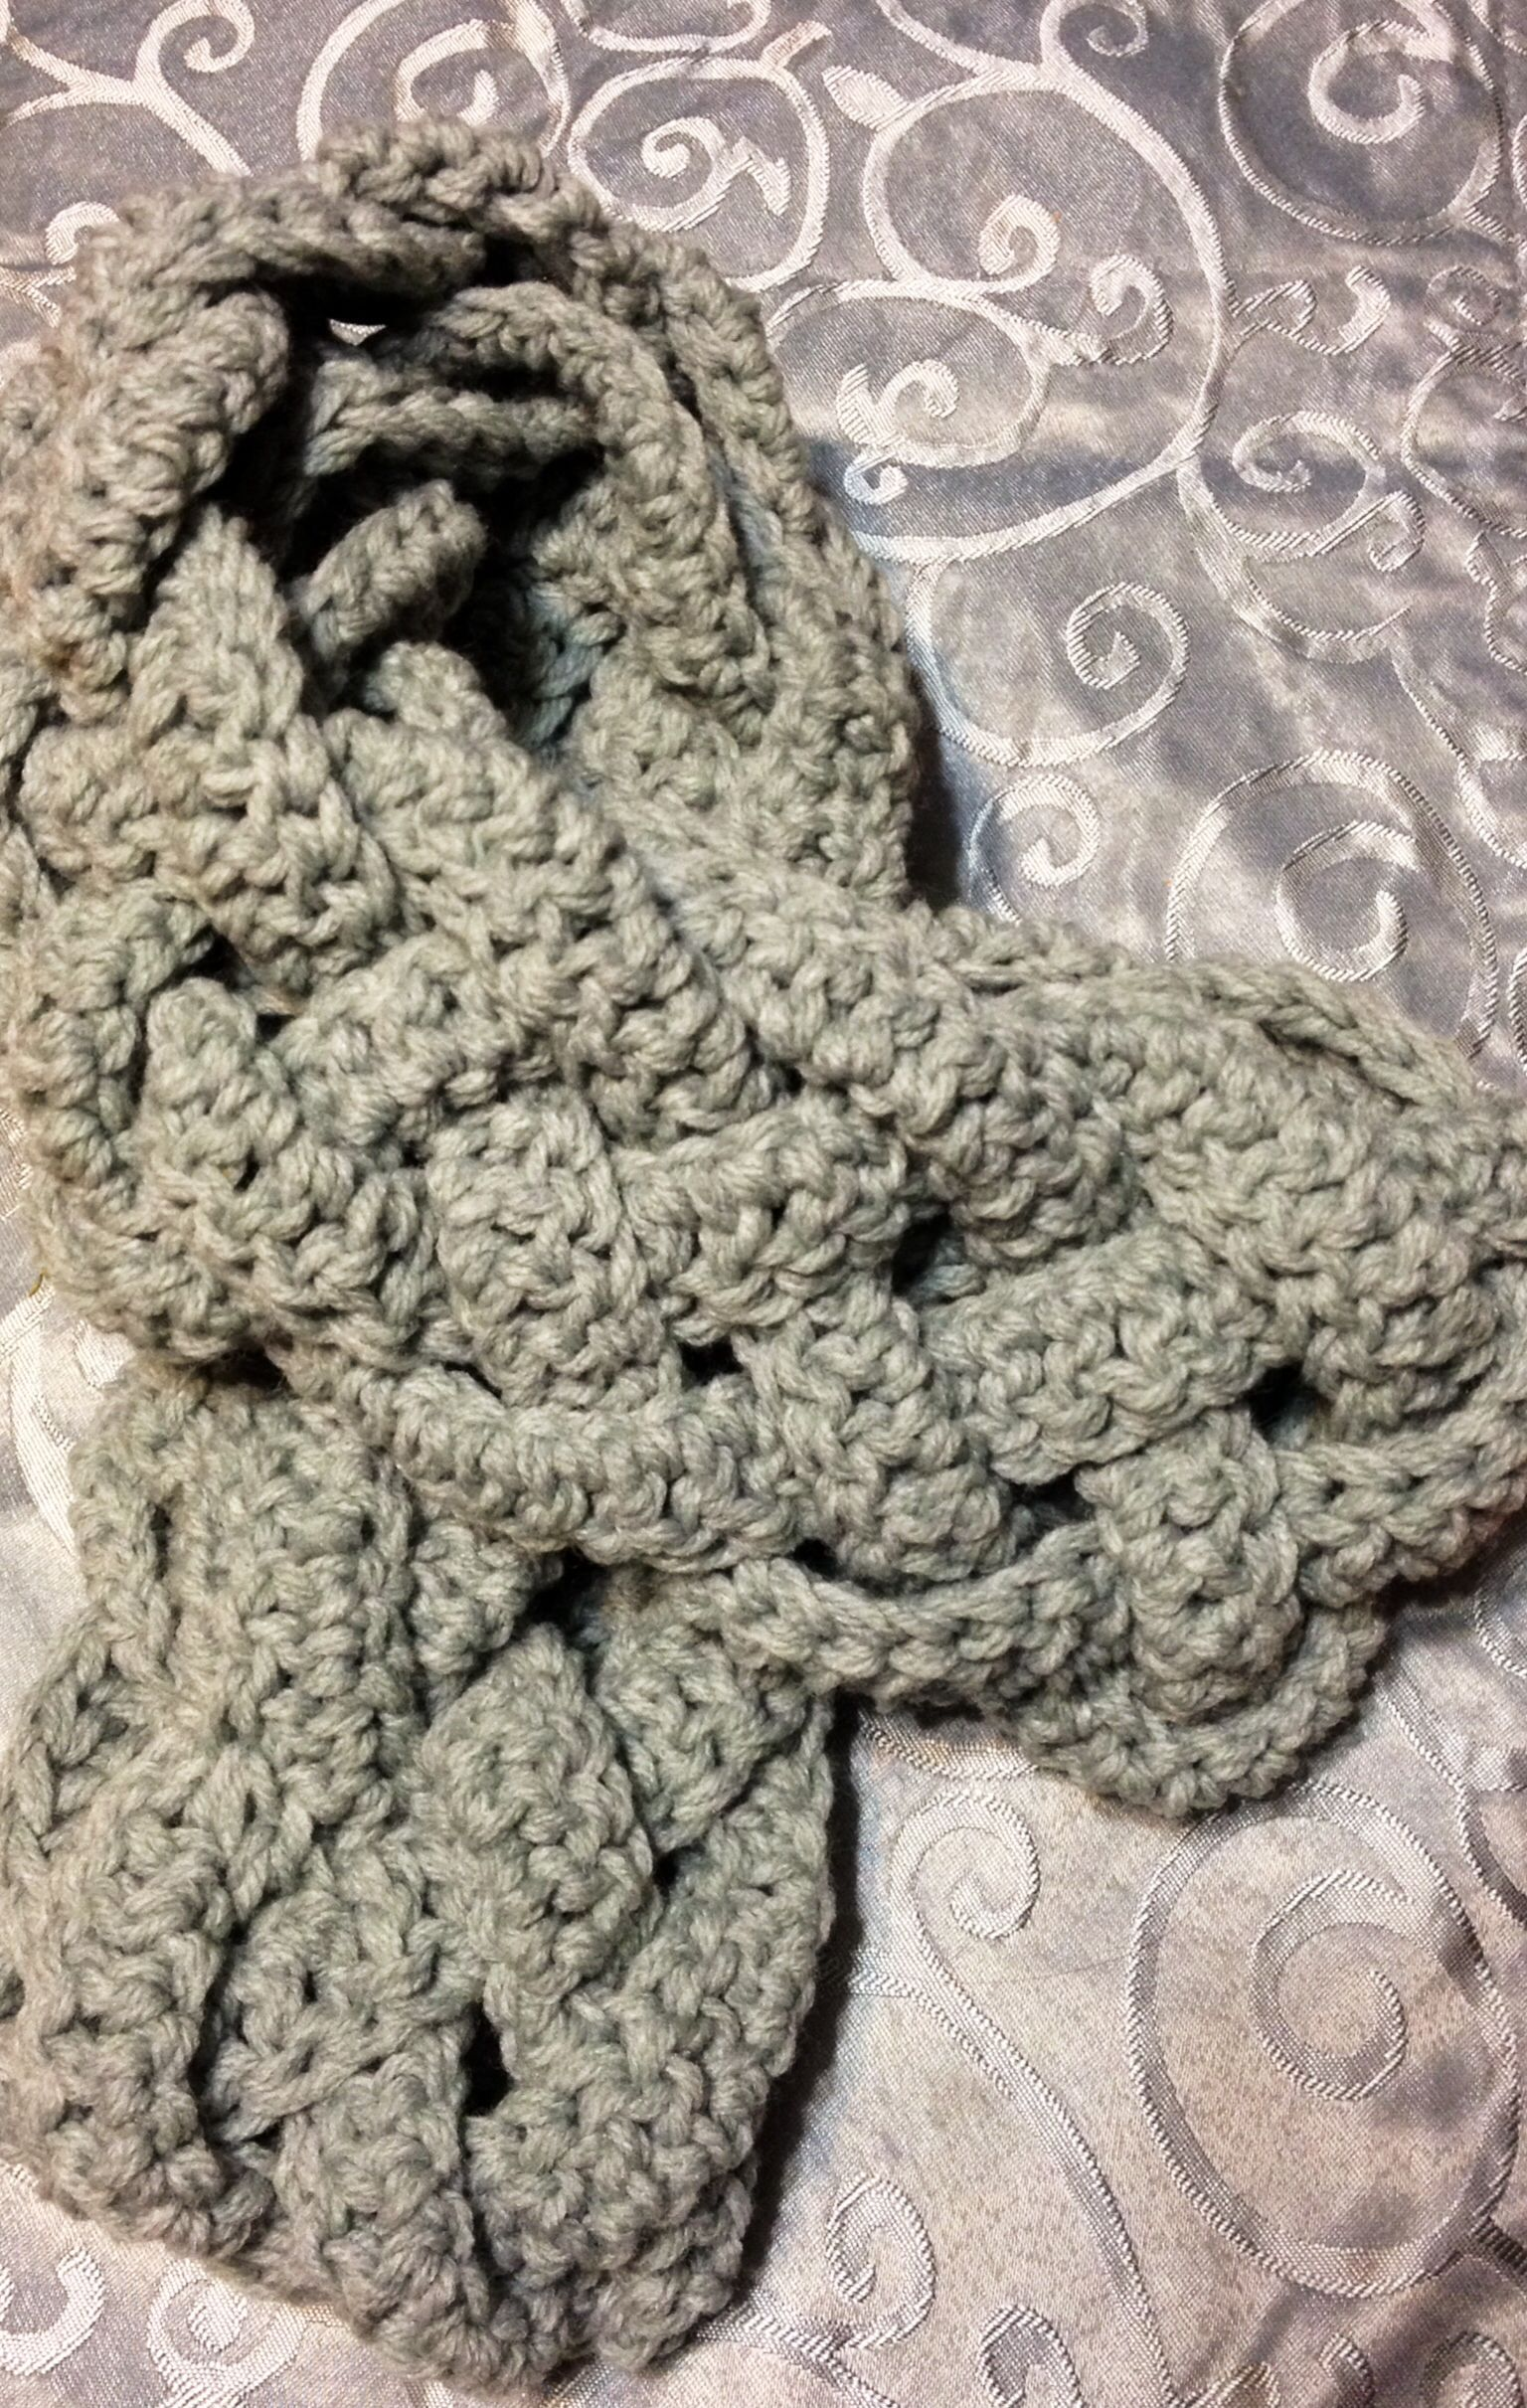 5 Strand Braid Crocheted Infinity Scarf Chain 200 Double Crochet In Each Stitch Across R Crochet Braid Styles Crochet Infinity Scarf Scarf Knitting Patterns